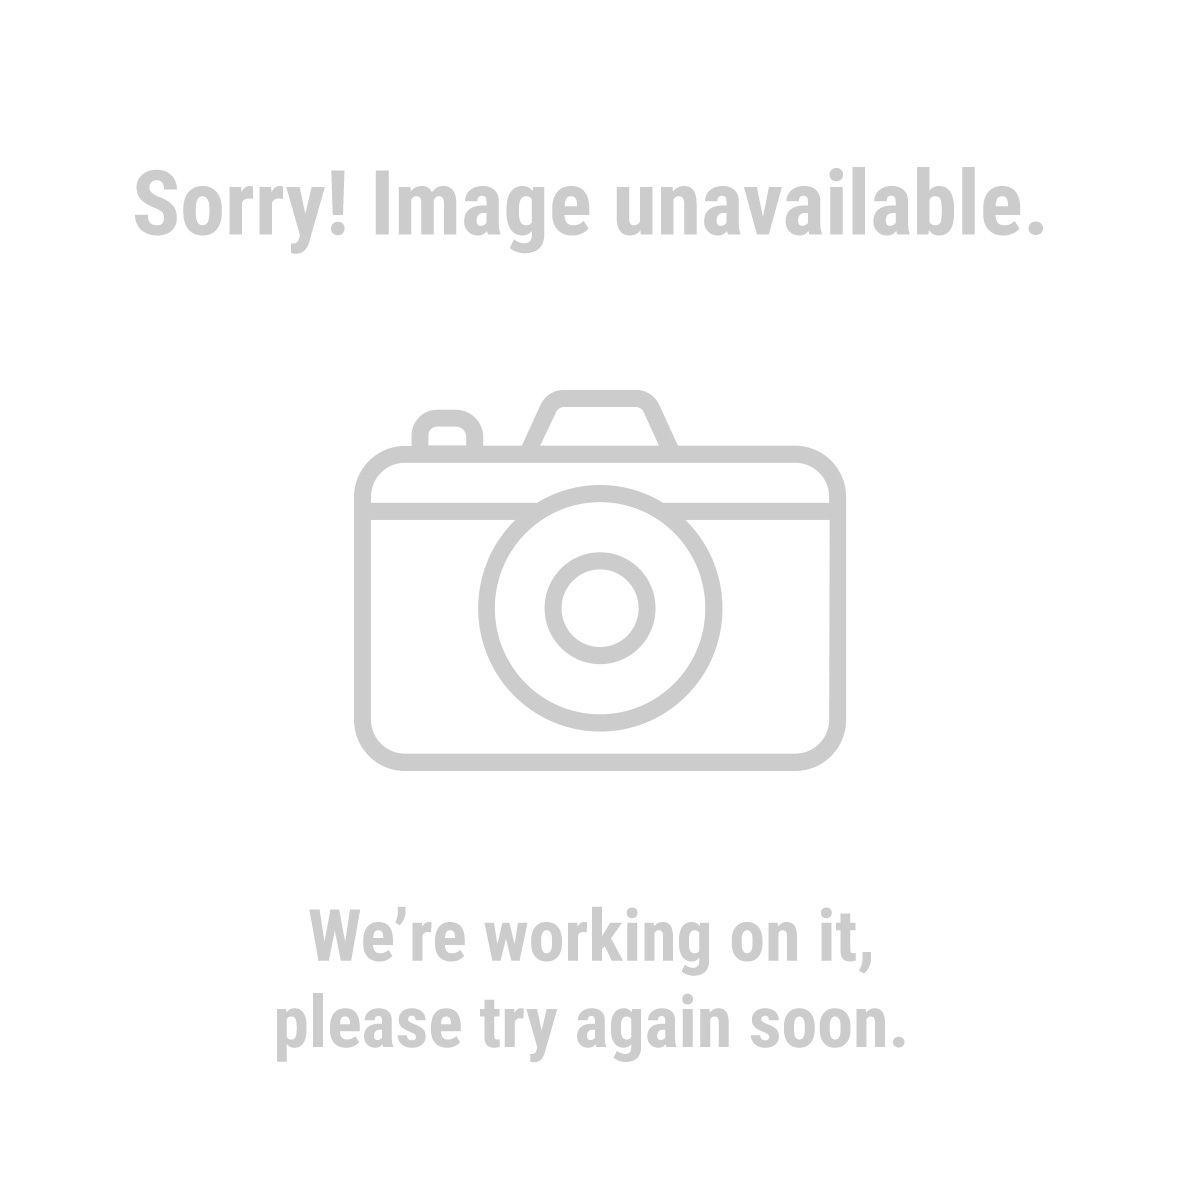 harbor freight bandsaw. 1 in. x 30 belt sander harbor freight bandsaw p